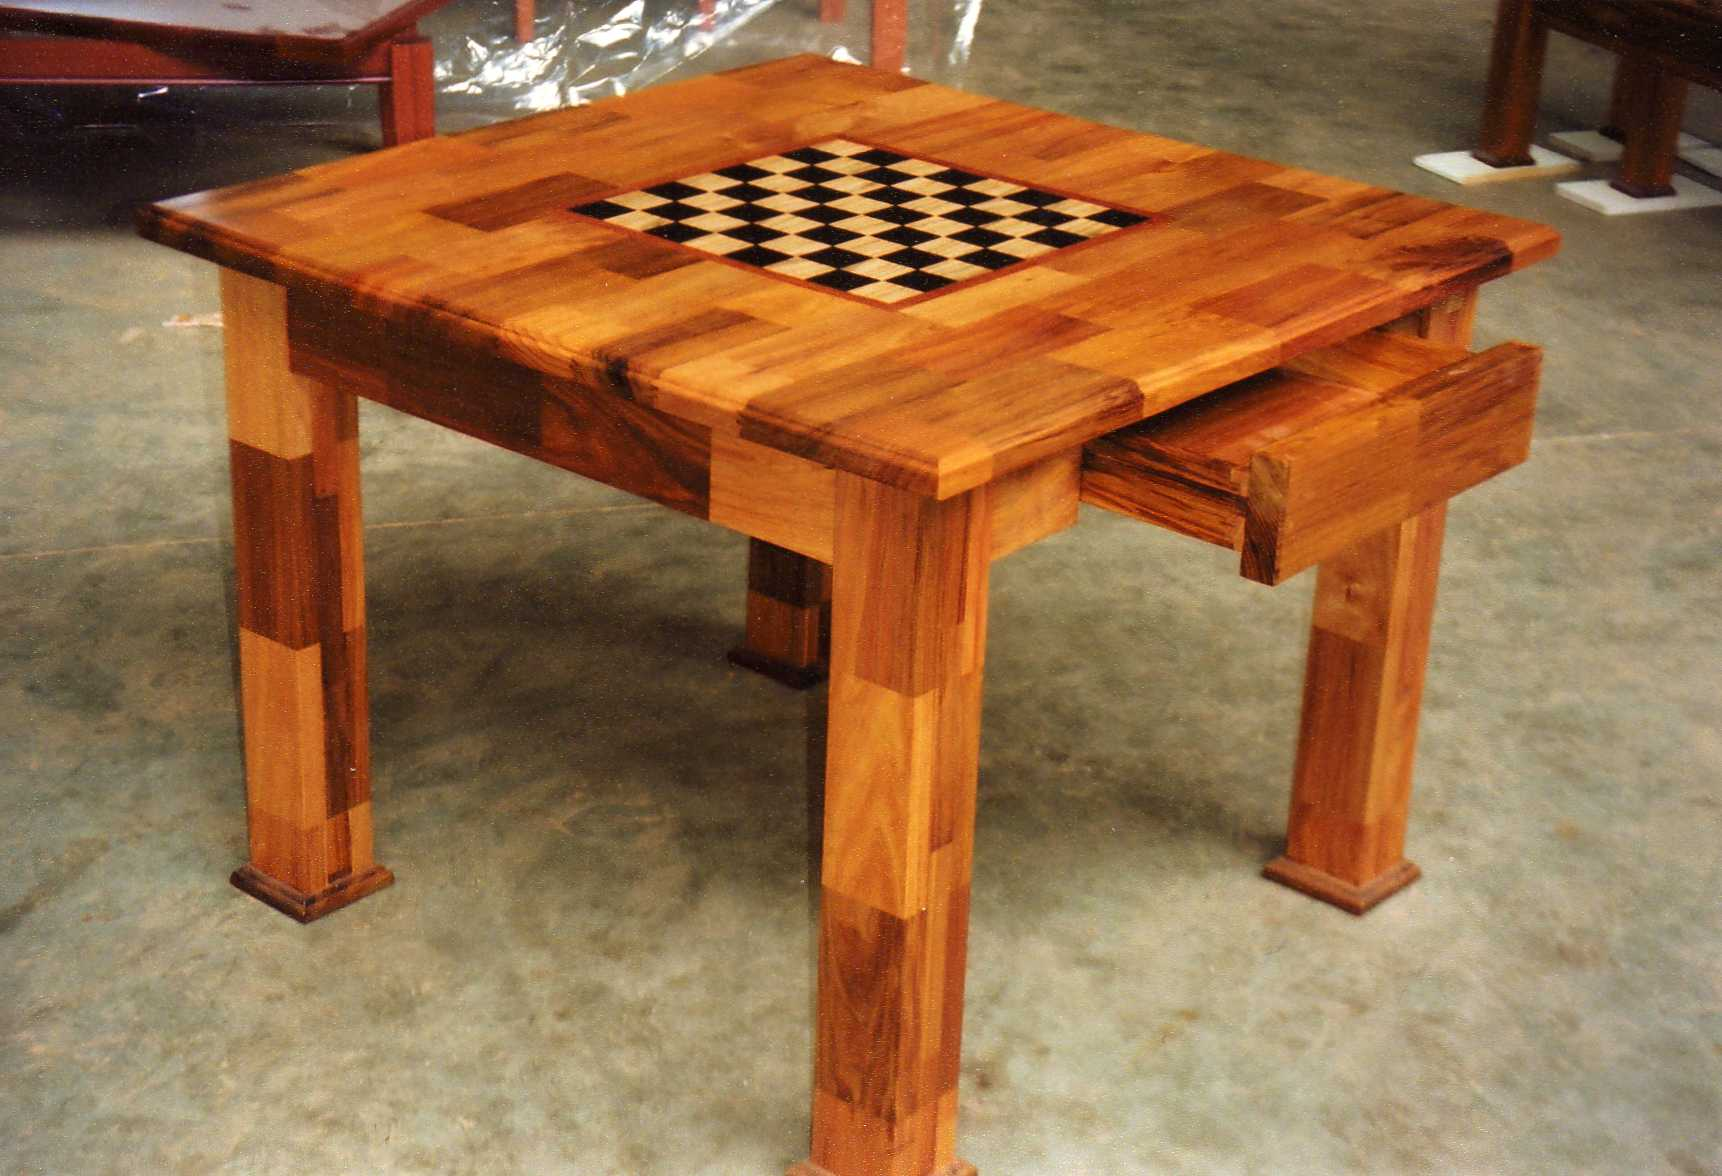 Checkerboard Chess Table DIY Furniture Plans amp Technical